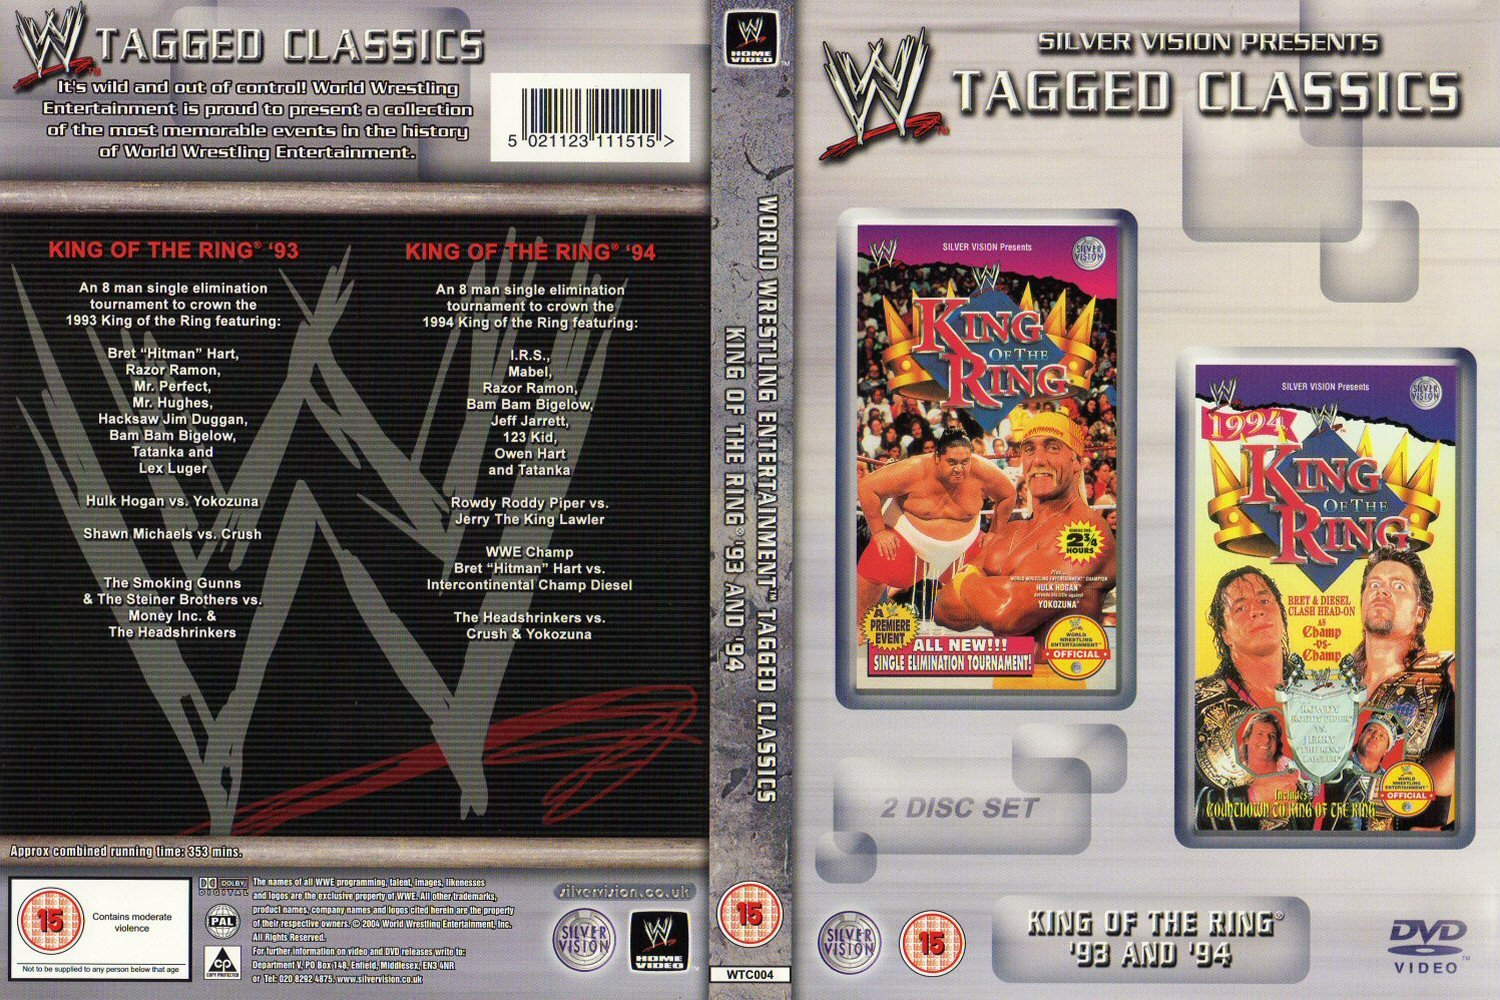 Wwe_Tagged_Classics_King_Of_The_Ring_93-94_Uk-front